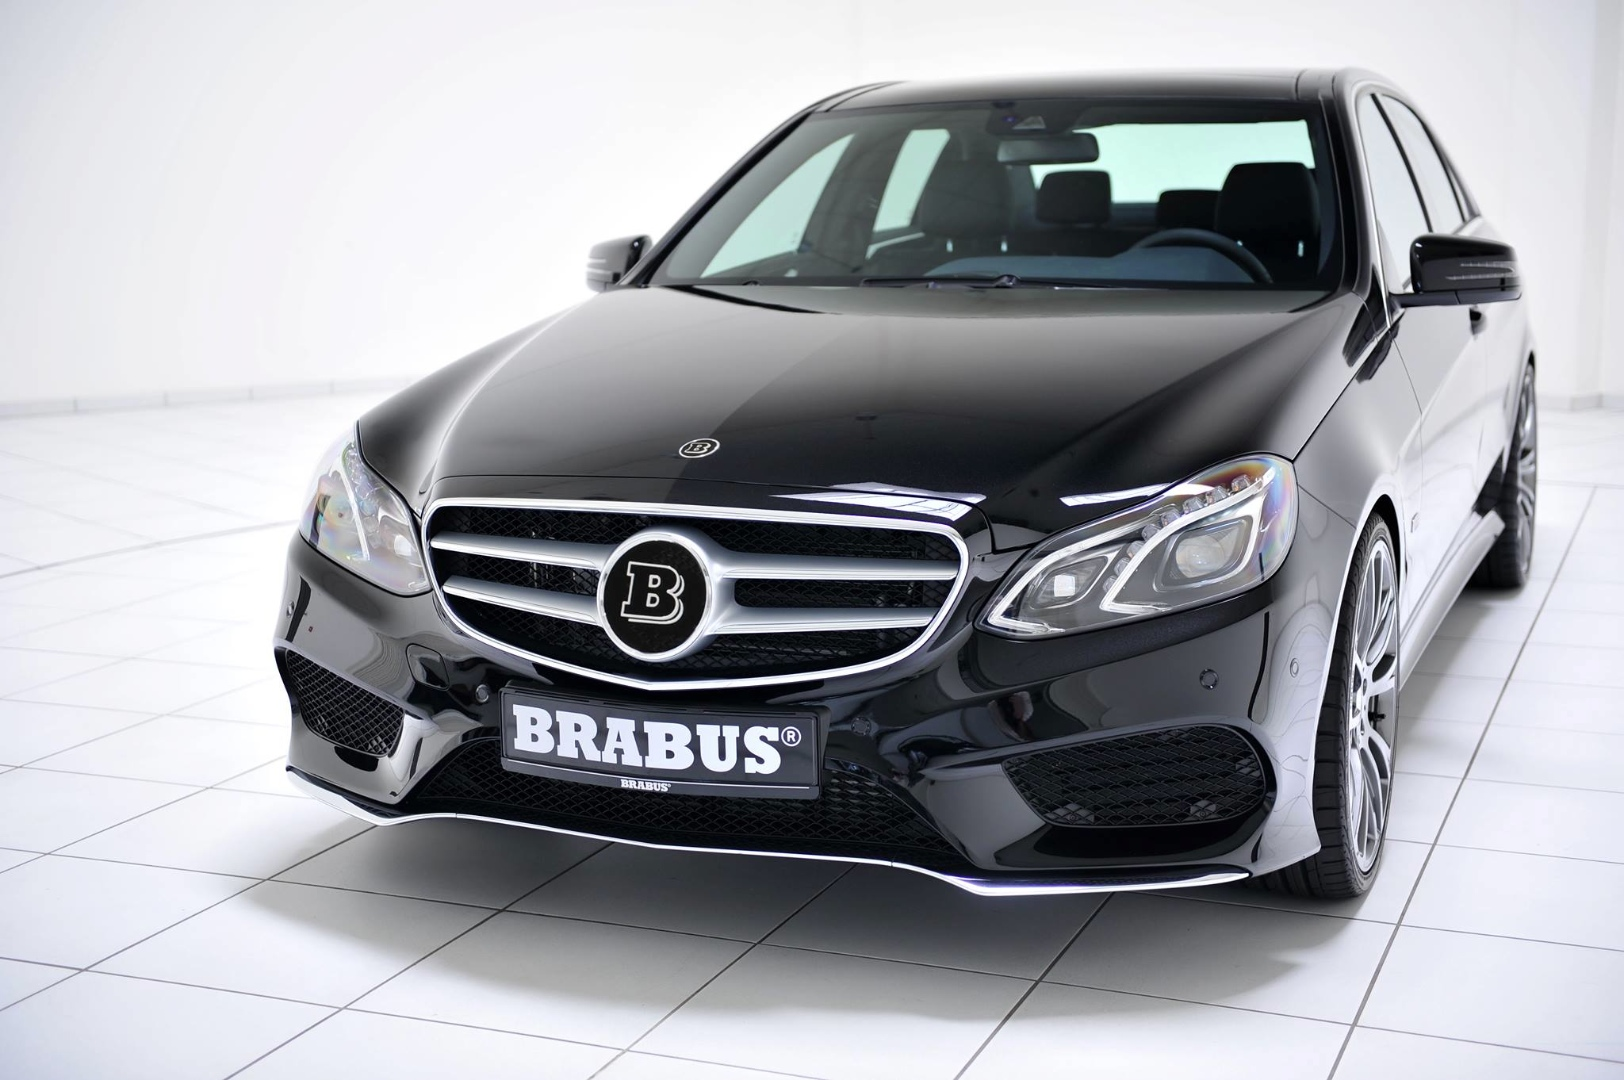 Brabus unveils mercedes benz e400 cgi tuning package for Mercedes benz packages